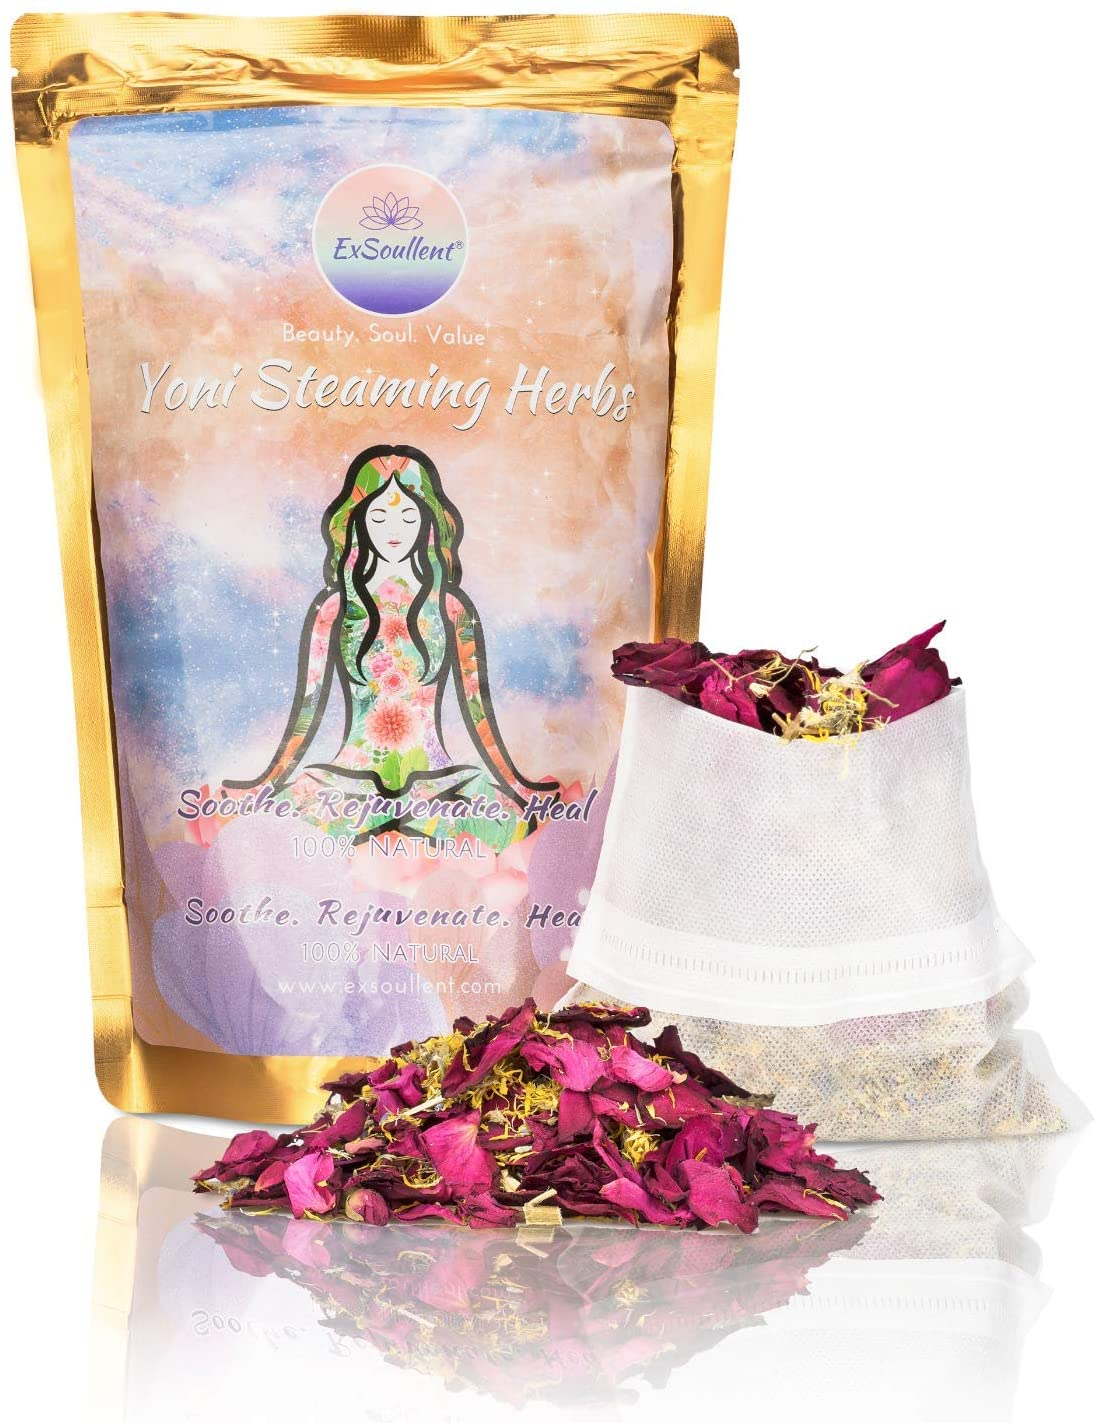 ExSoullent Yoni Steaming Herbs - 100% Organic Vaginal Steam, 8 OZ 10 Yoni Steam Herbs Blend, V Steam | Soothe. Rejuvenate. Heal (8-16 steams)